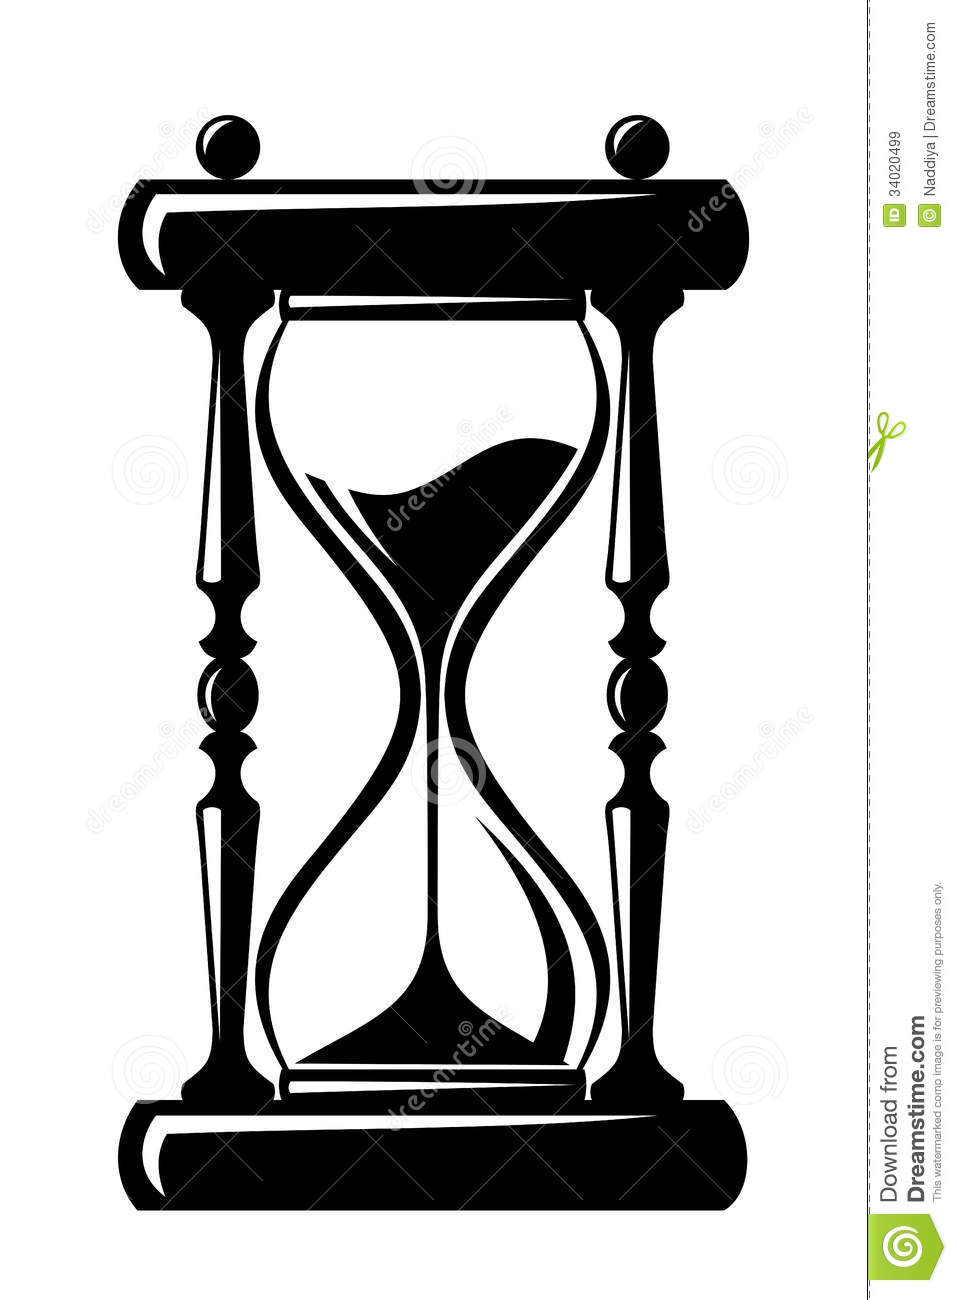 Hourglass. Black Silhouette. Royalty Free Stock Images - Image ...